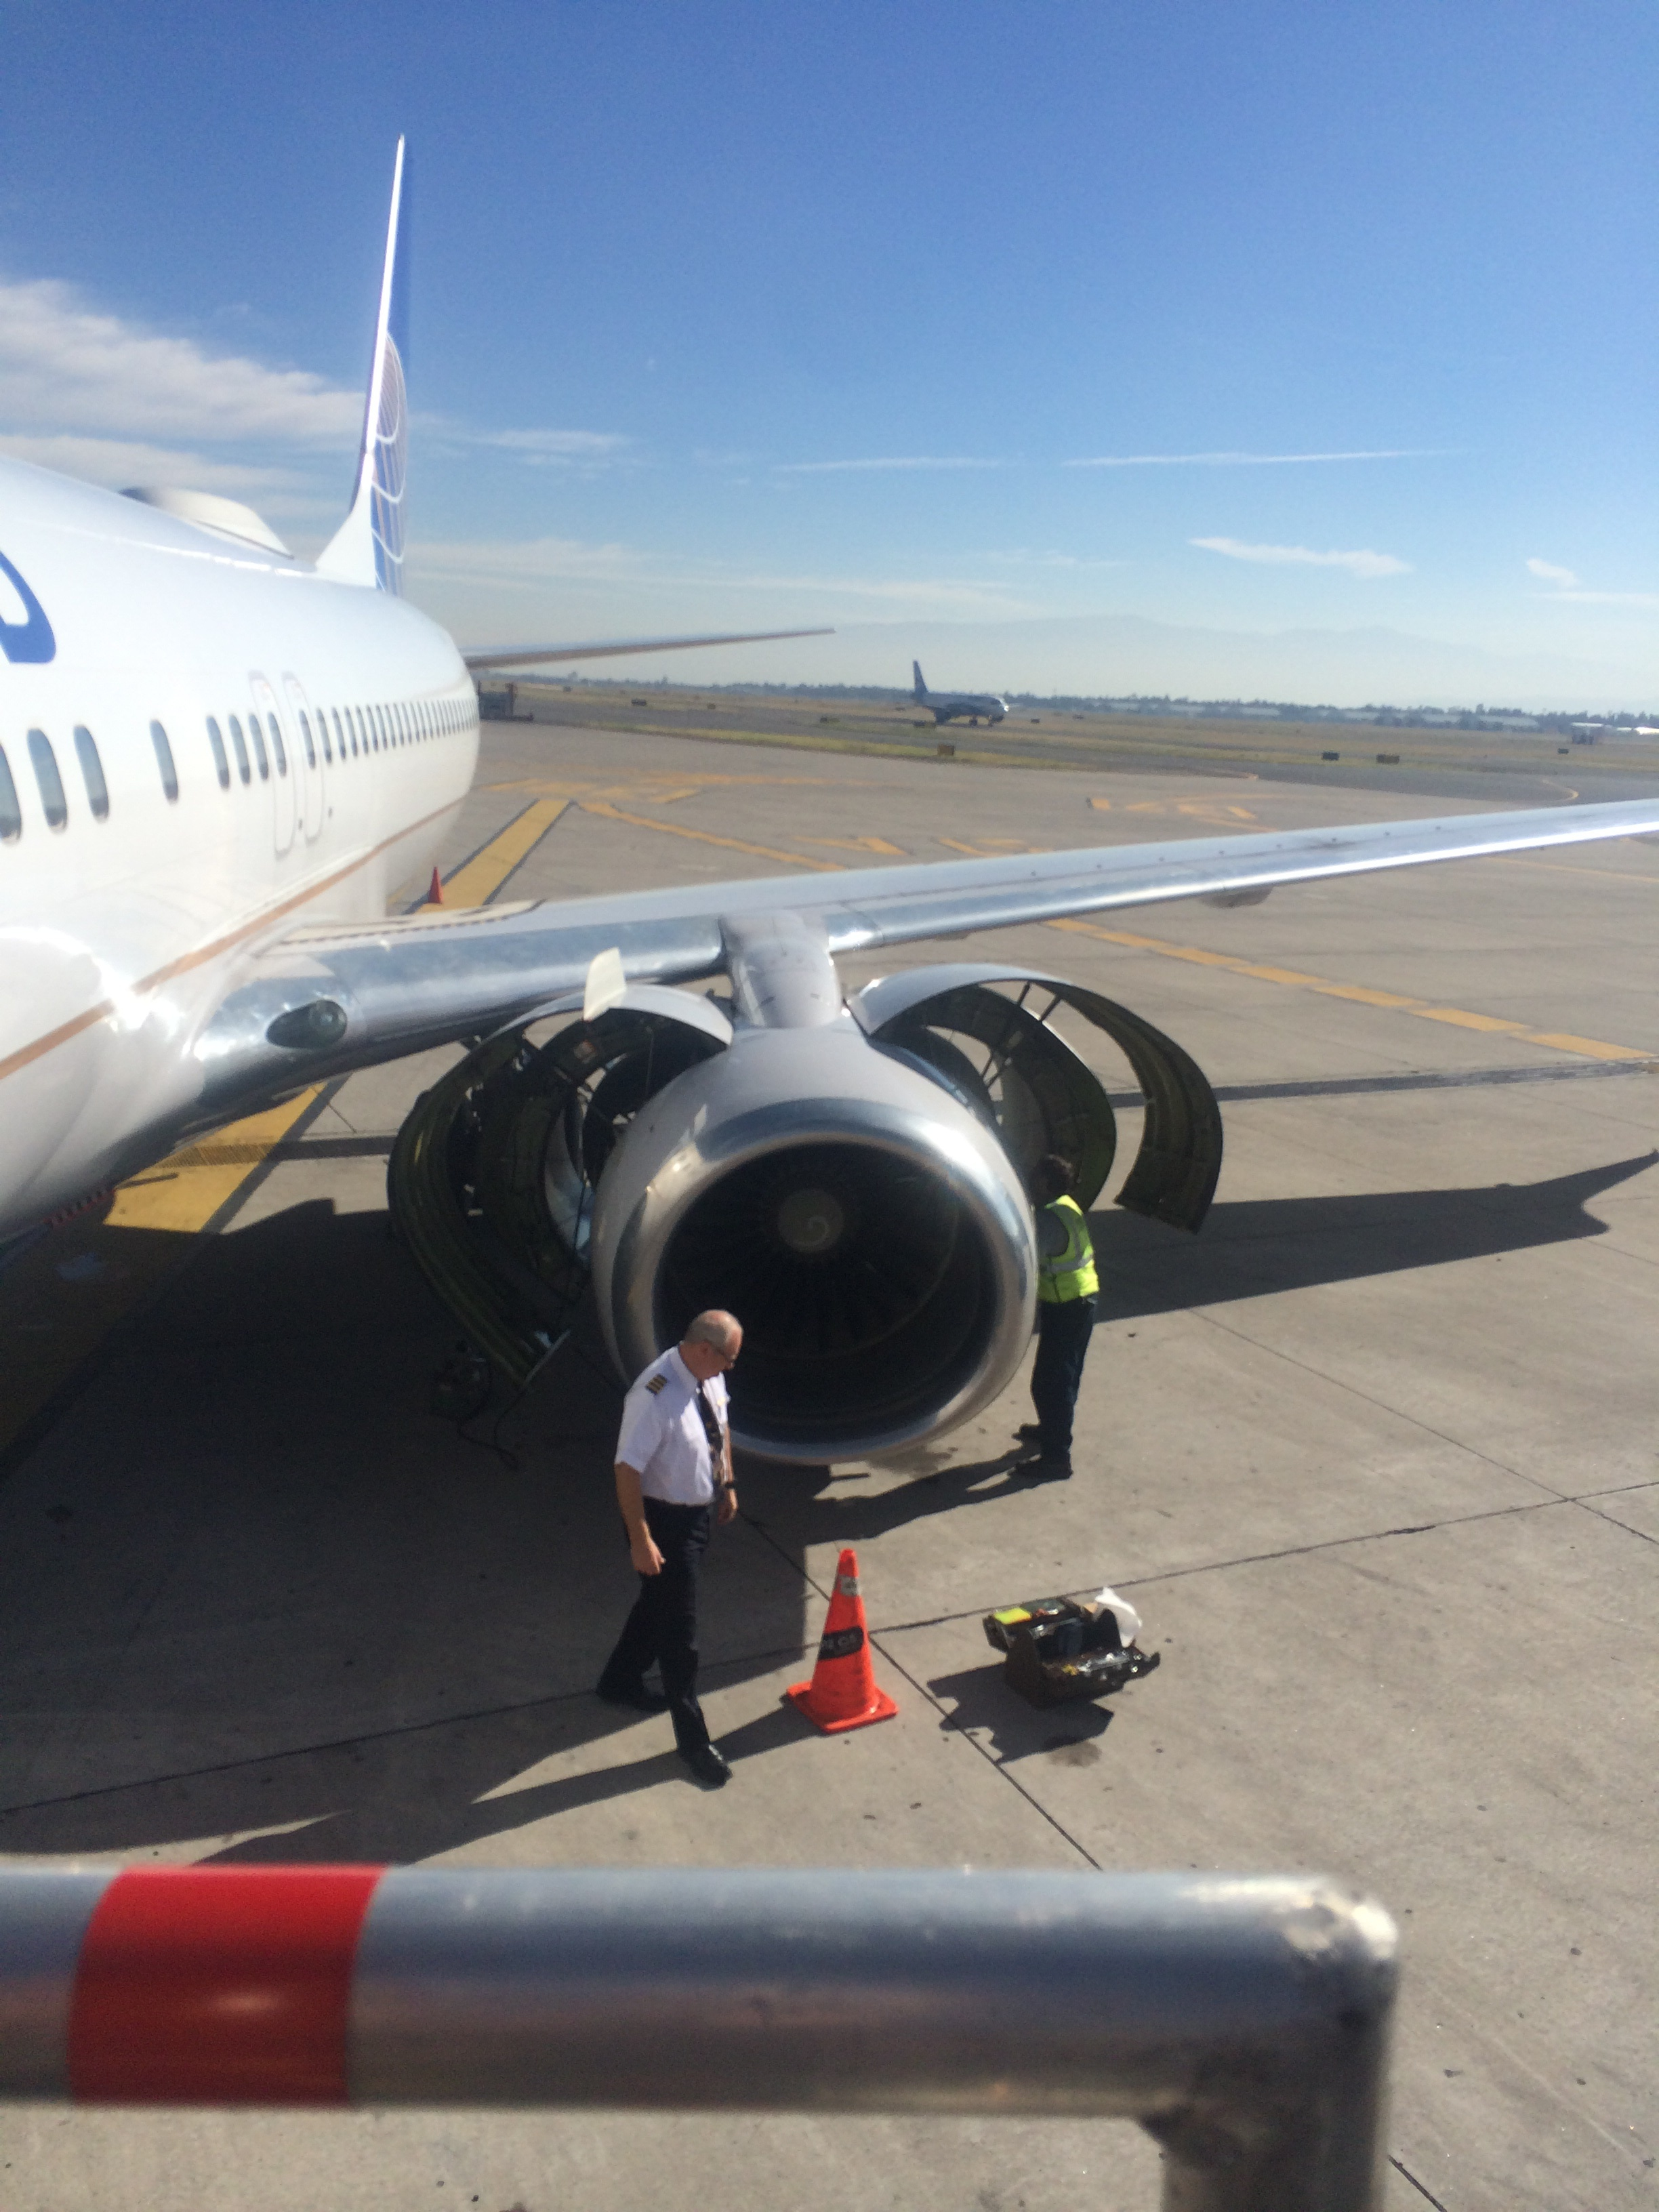 The pilot & airport maintenance checking the engine after we landed.